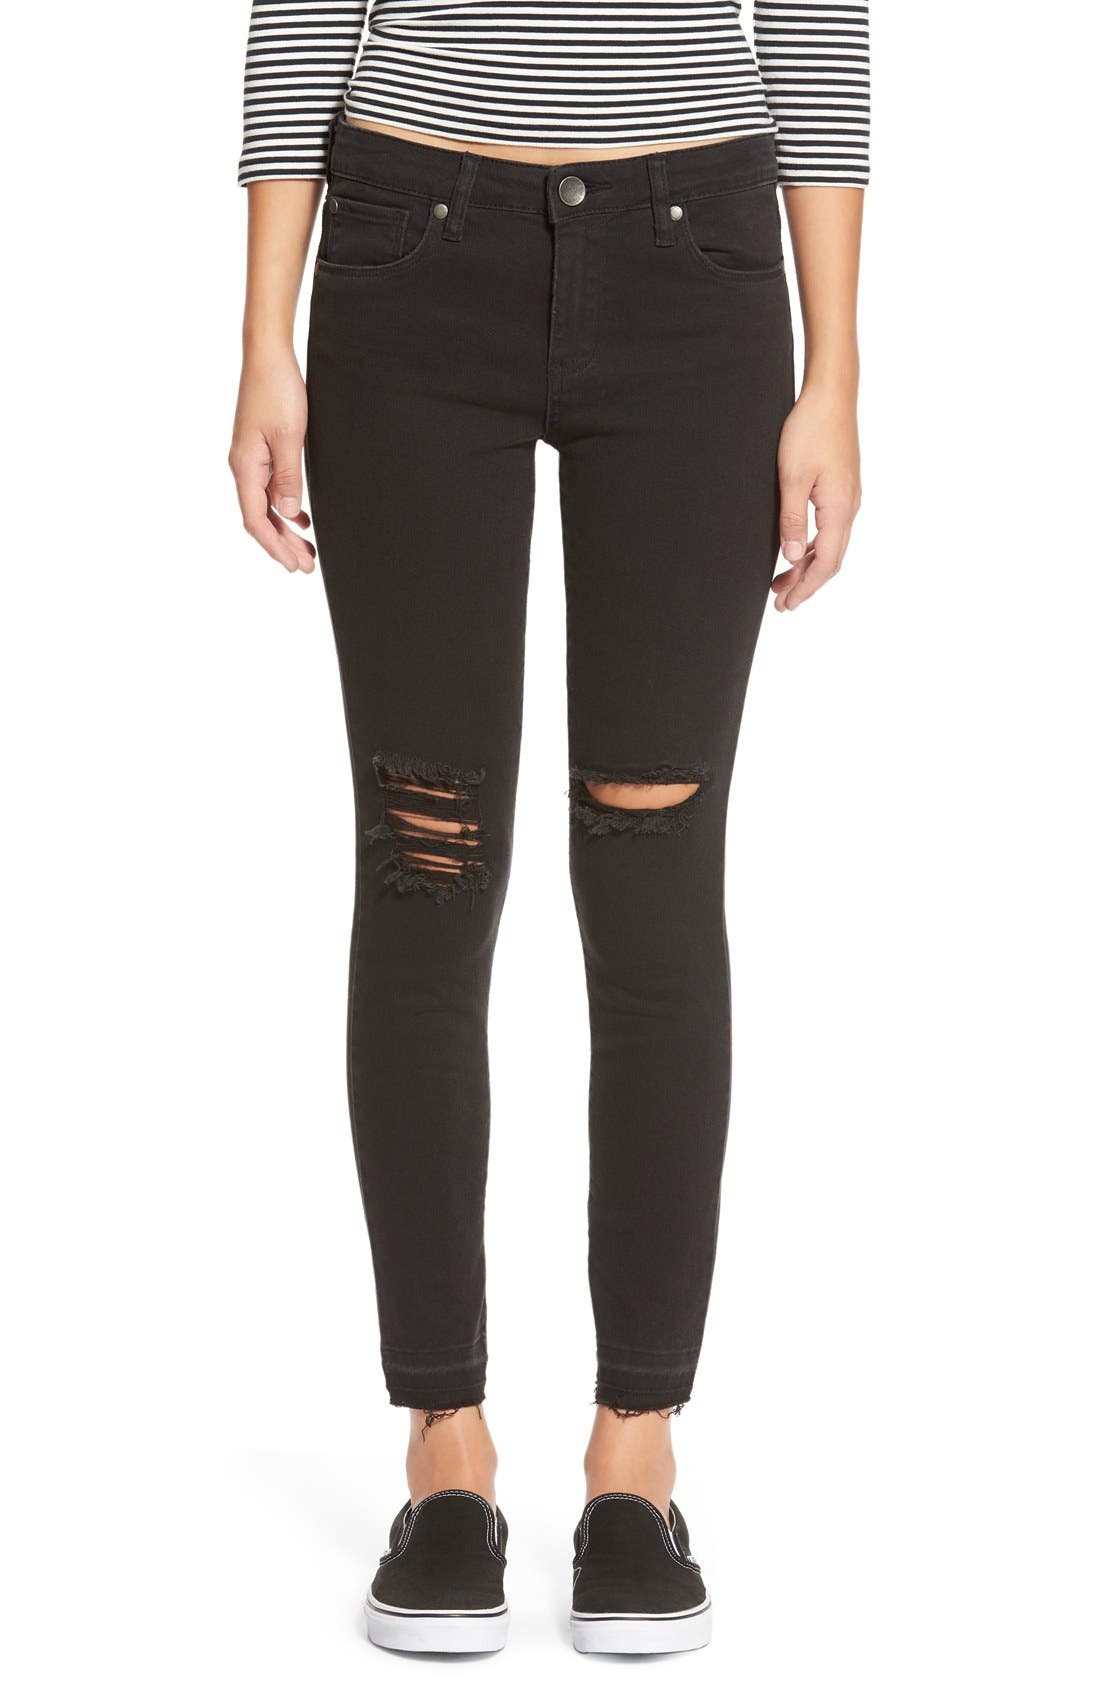 STSBlue 'Emma' Distressed High Rise Ankle Skinny Jeans,                             Main thumbnail 1, color,                             Black